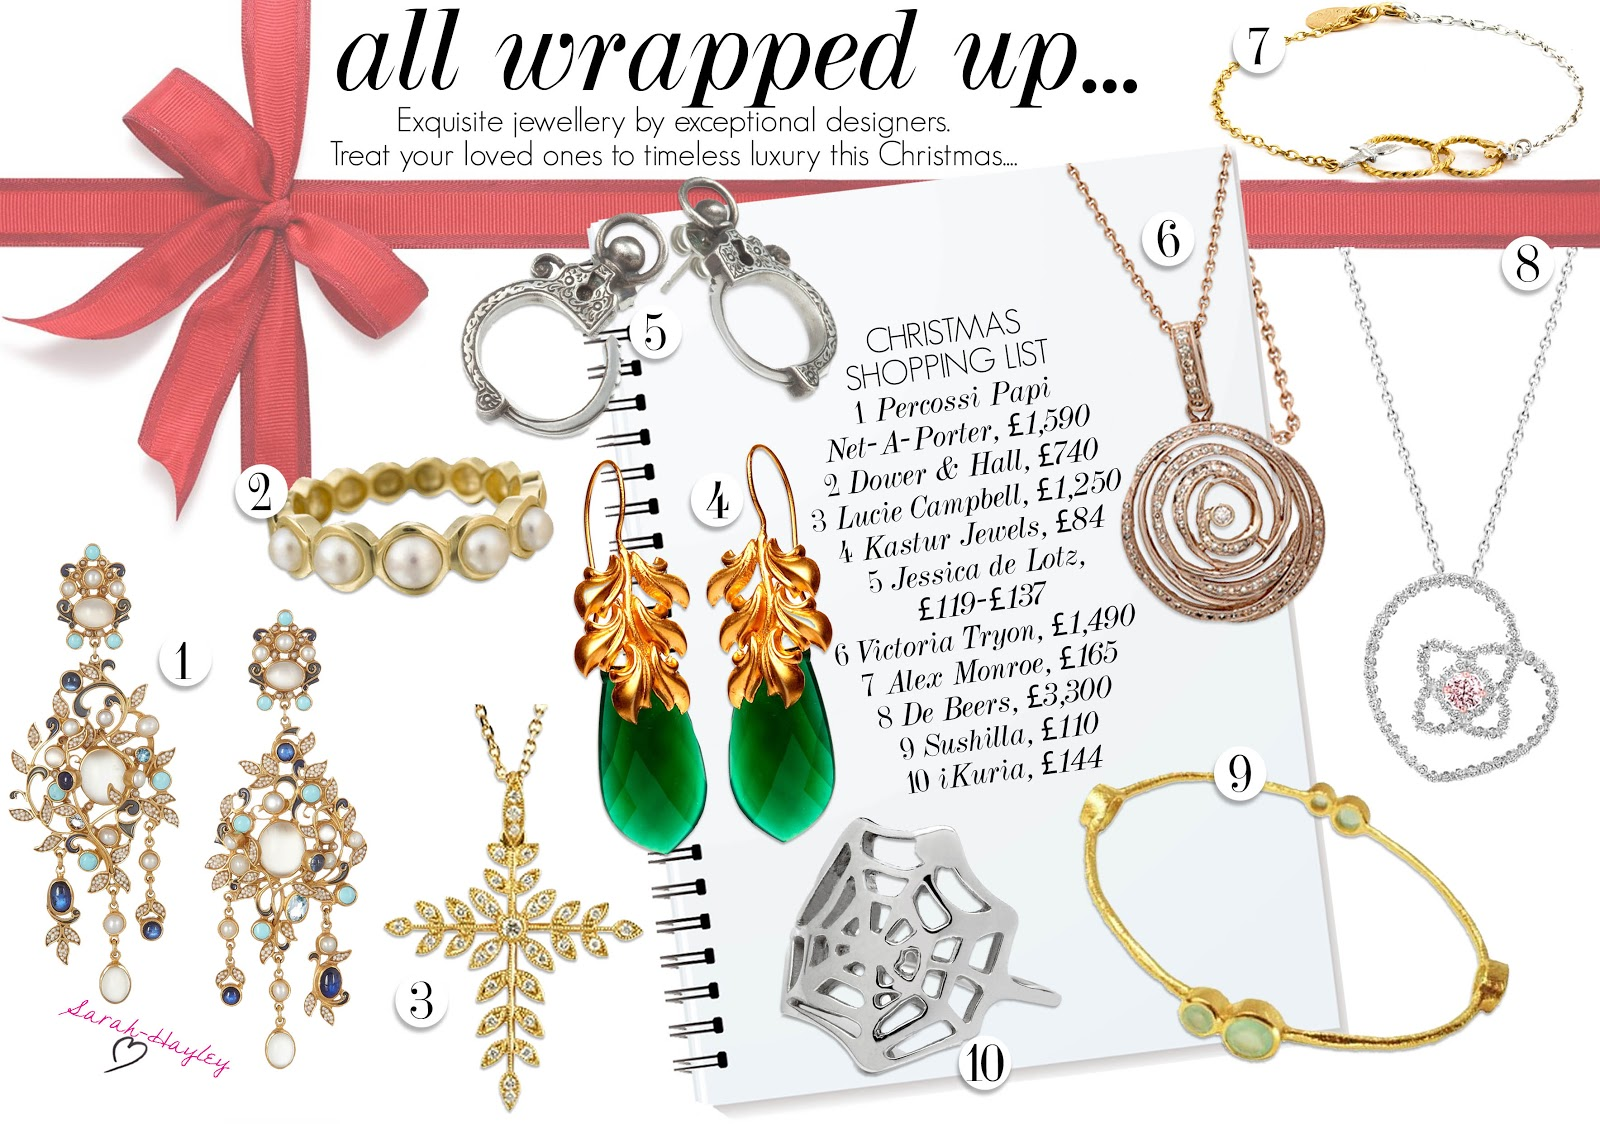 All Wrapped Up - Timeless Jewellery for Christmas - by Sarah-Hayley Owen